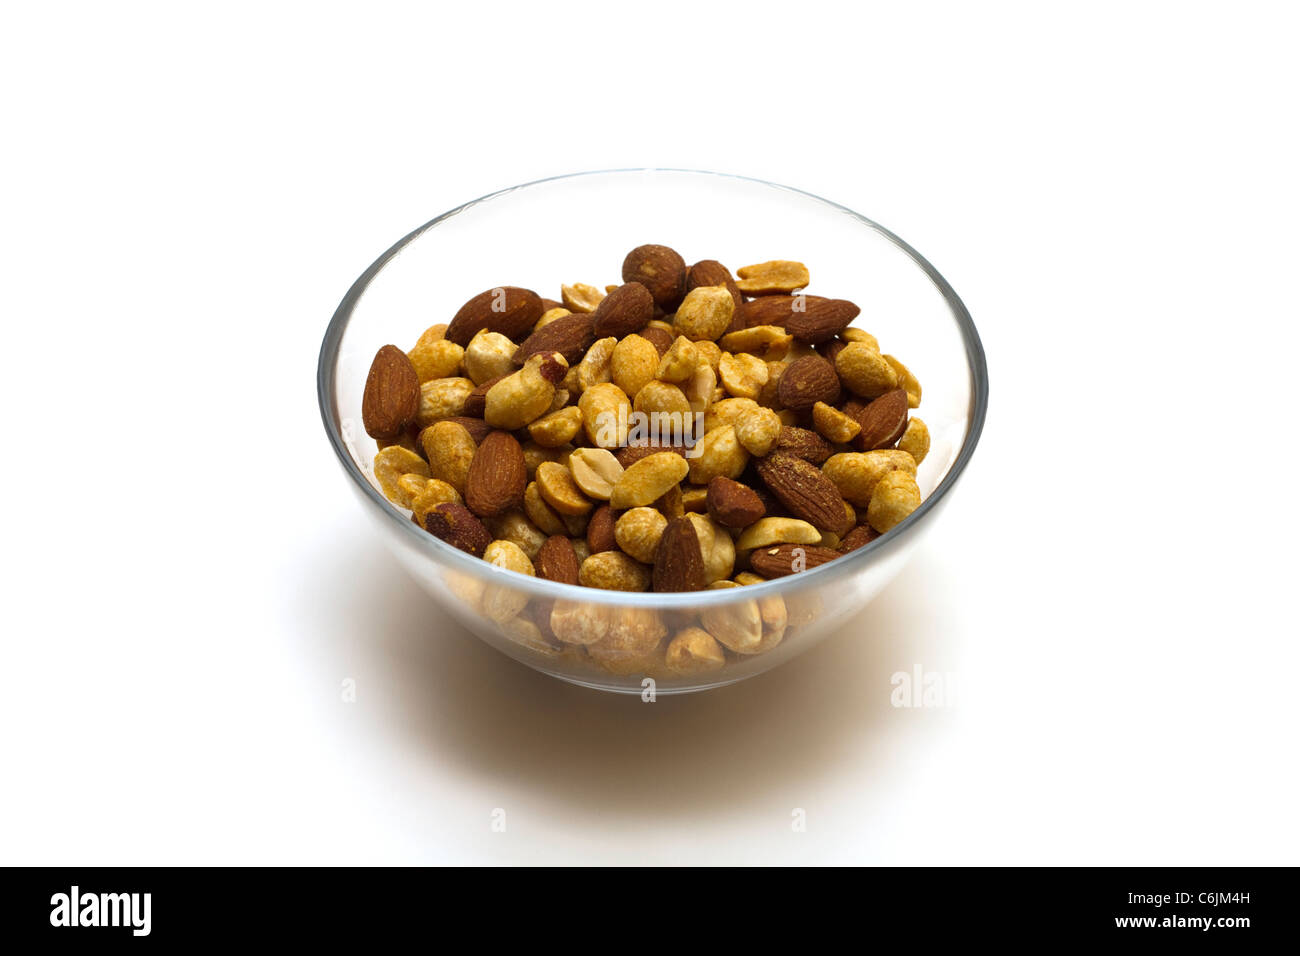 Dish of salted mixed nuts on a white background - Stock Image